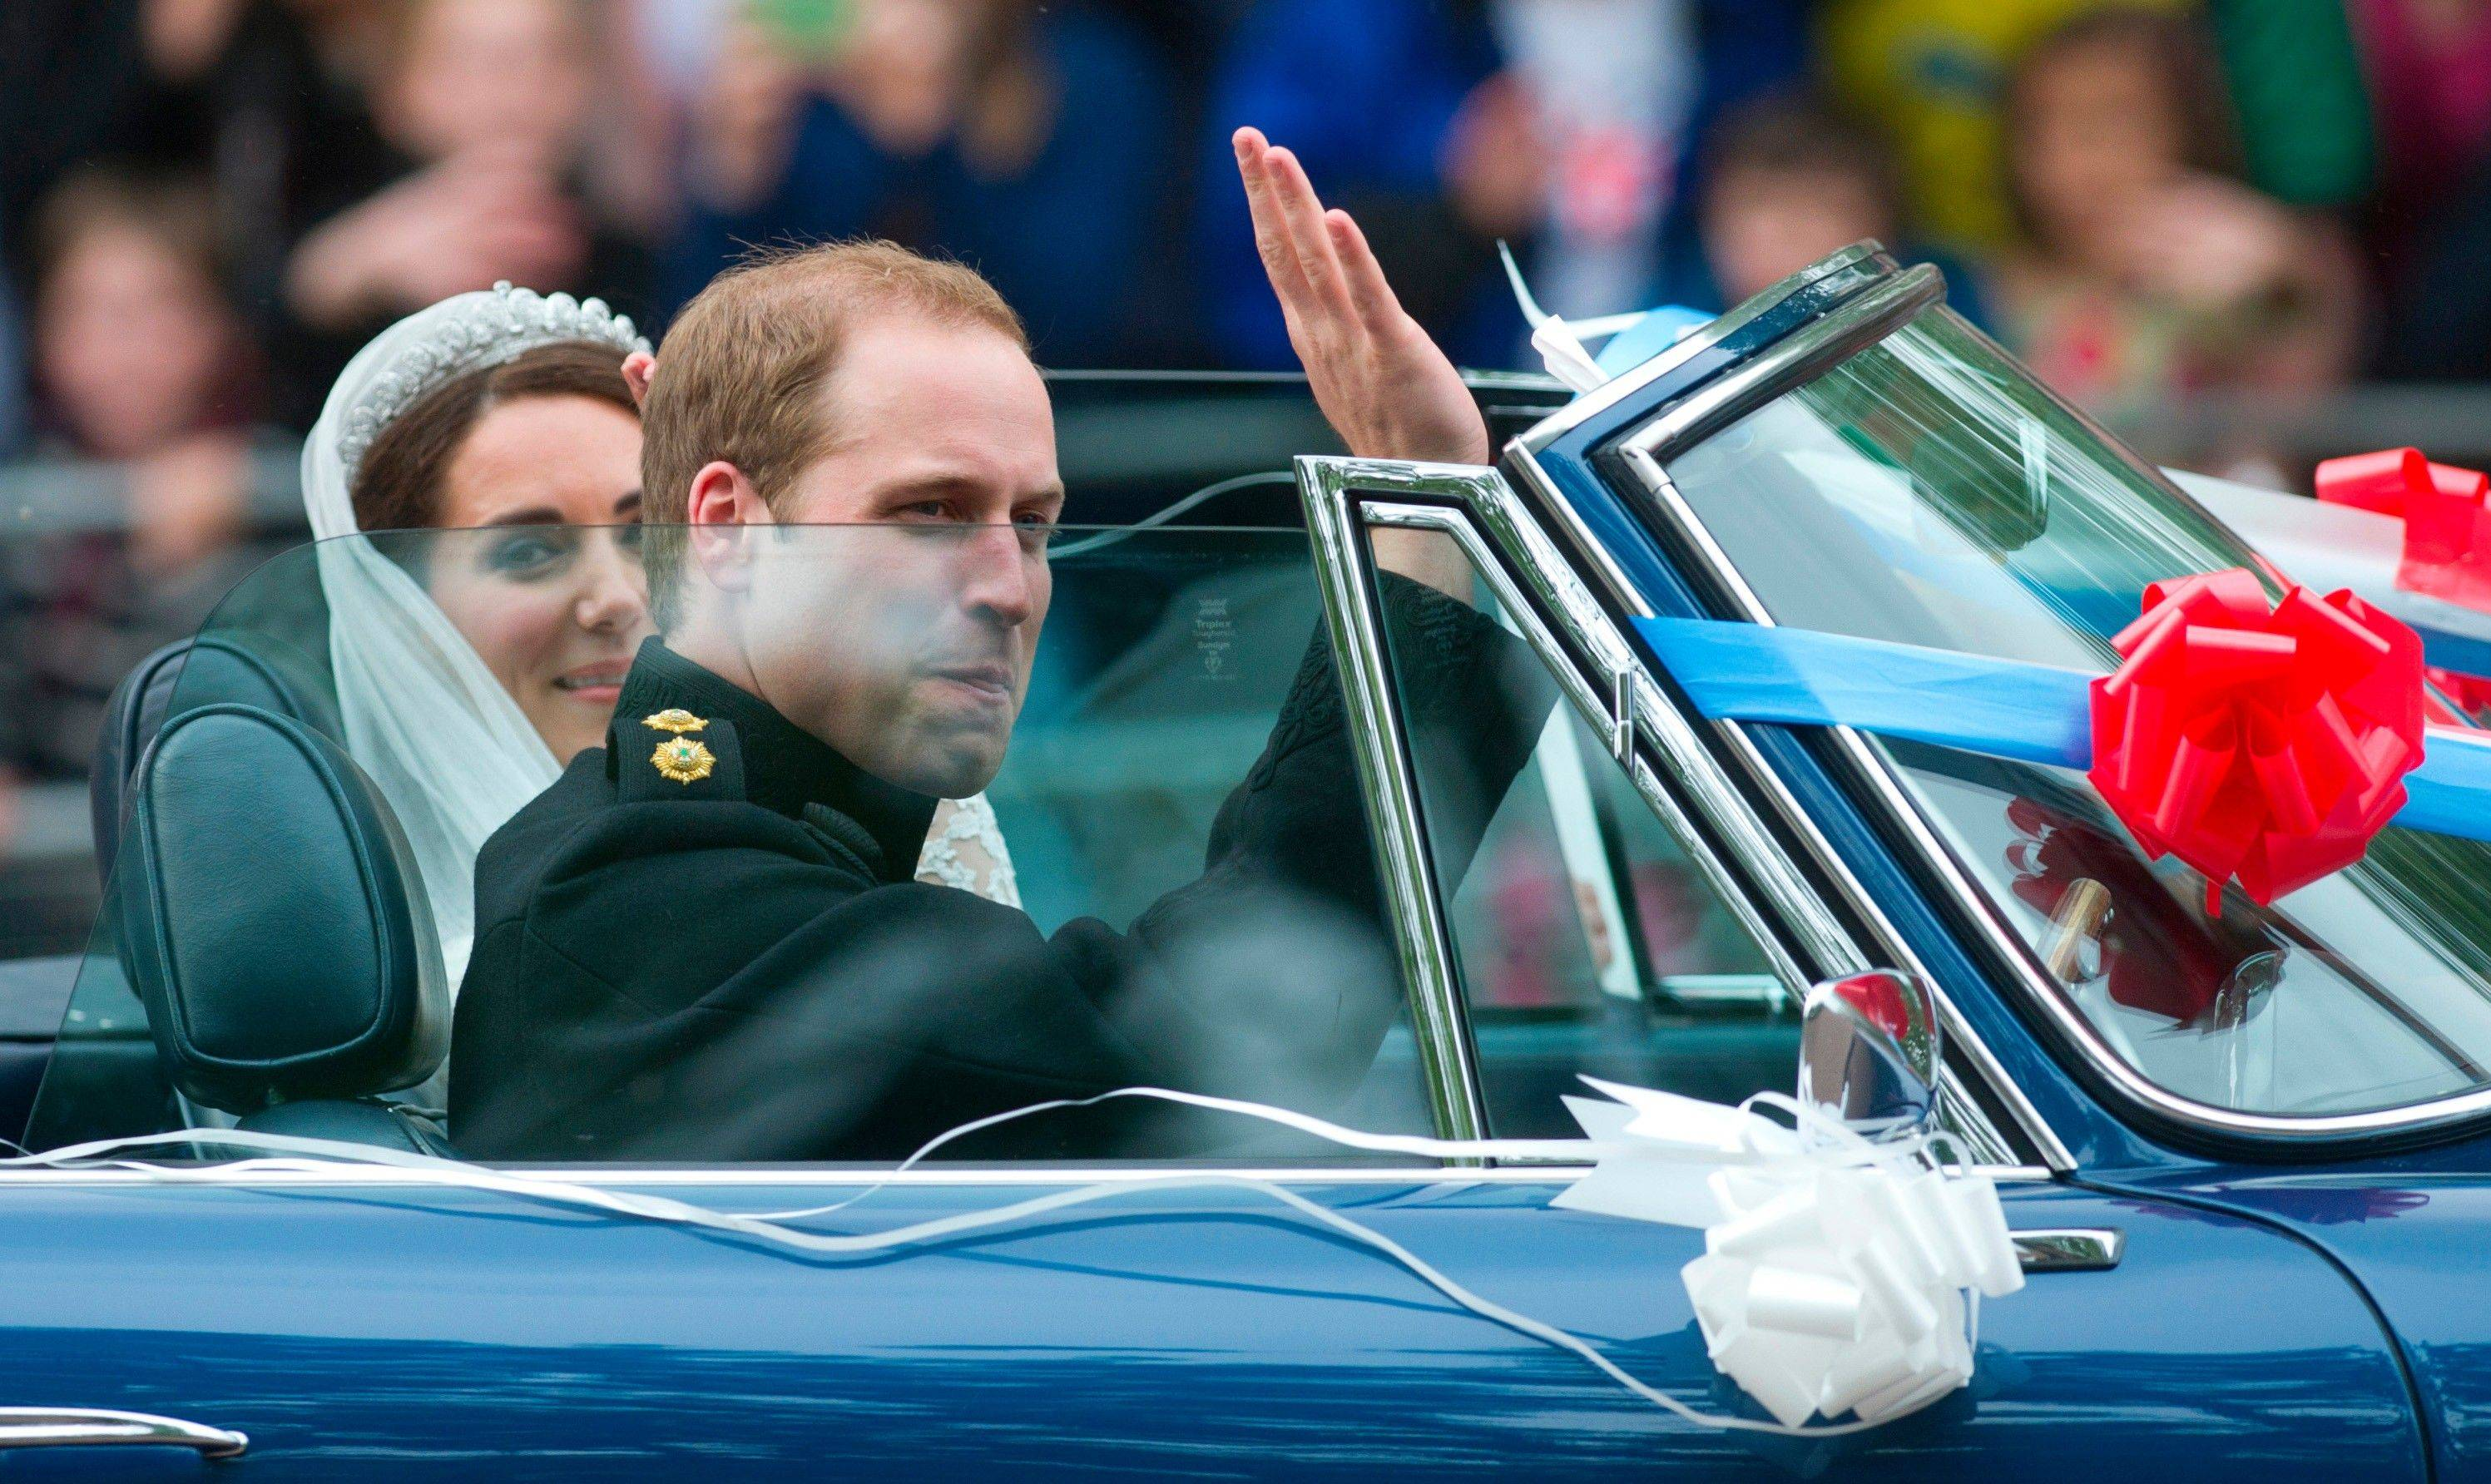 Britain's Prince William drives his wife Kate, Duchess of Cambridge, away from Buckingham Palace in a vintage Aston Martin Volante convertible after their wedding at London's Westminster Abbey, Friday, April, 29, 2011.